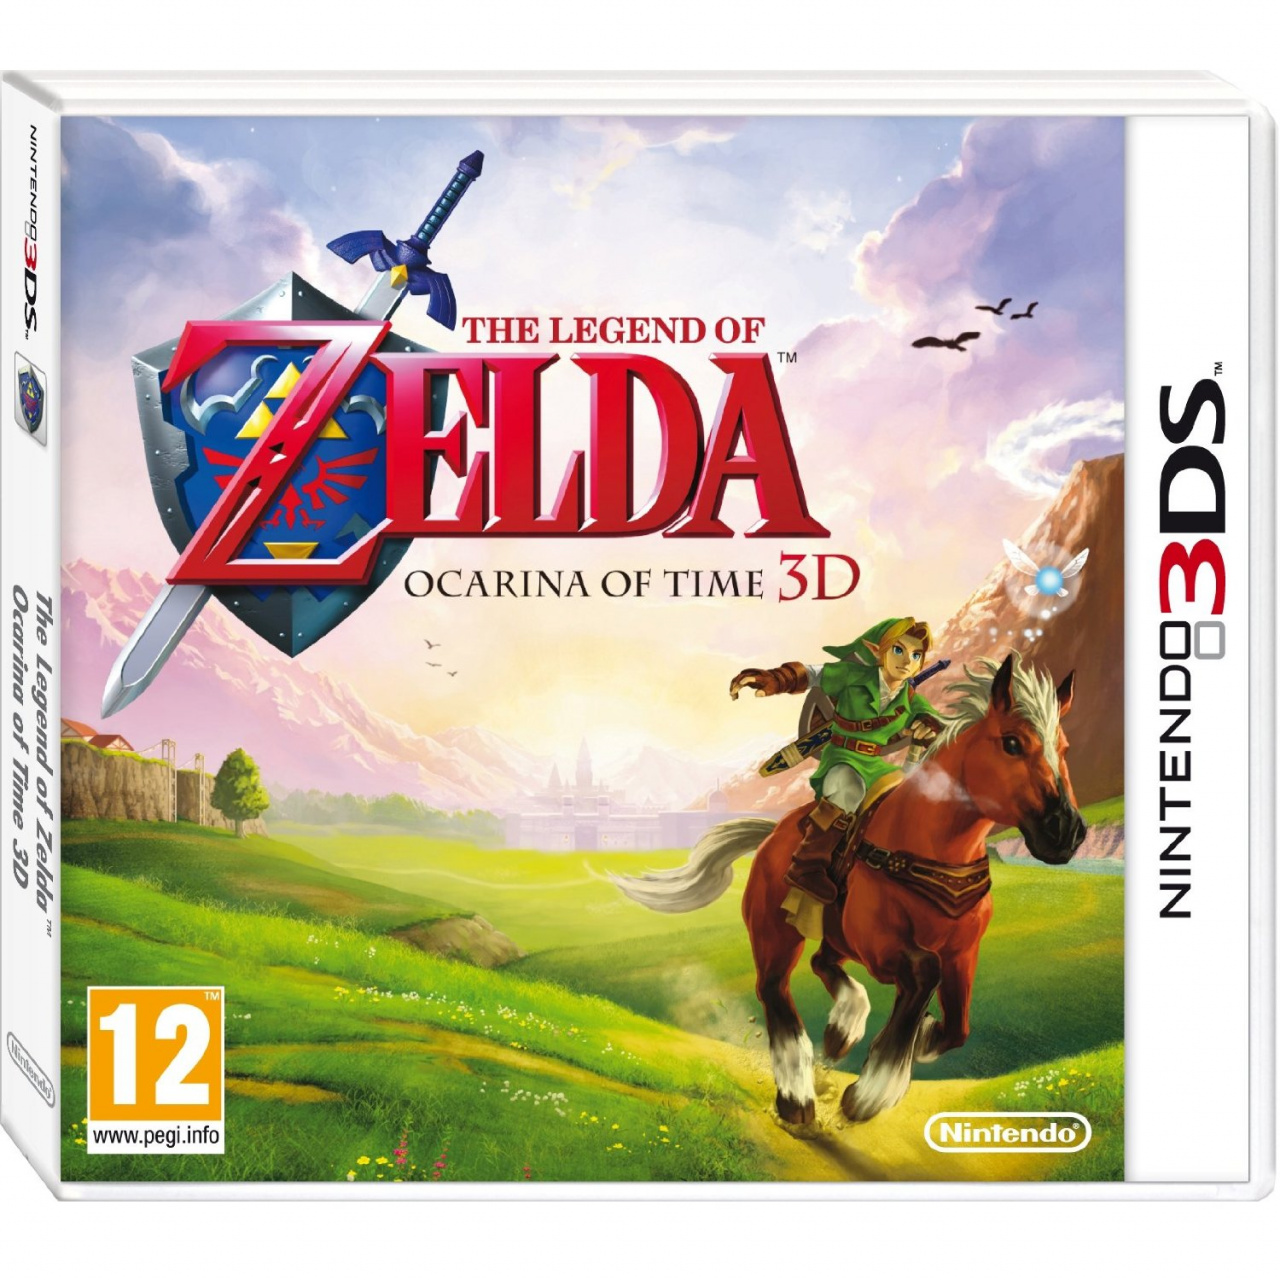 Ocarina of time 3ds game box - Best Nintendo 3DS Games